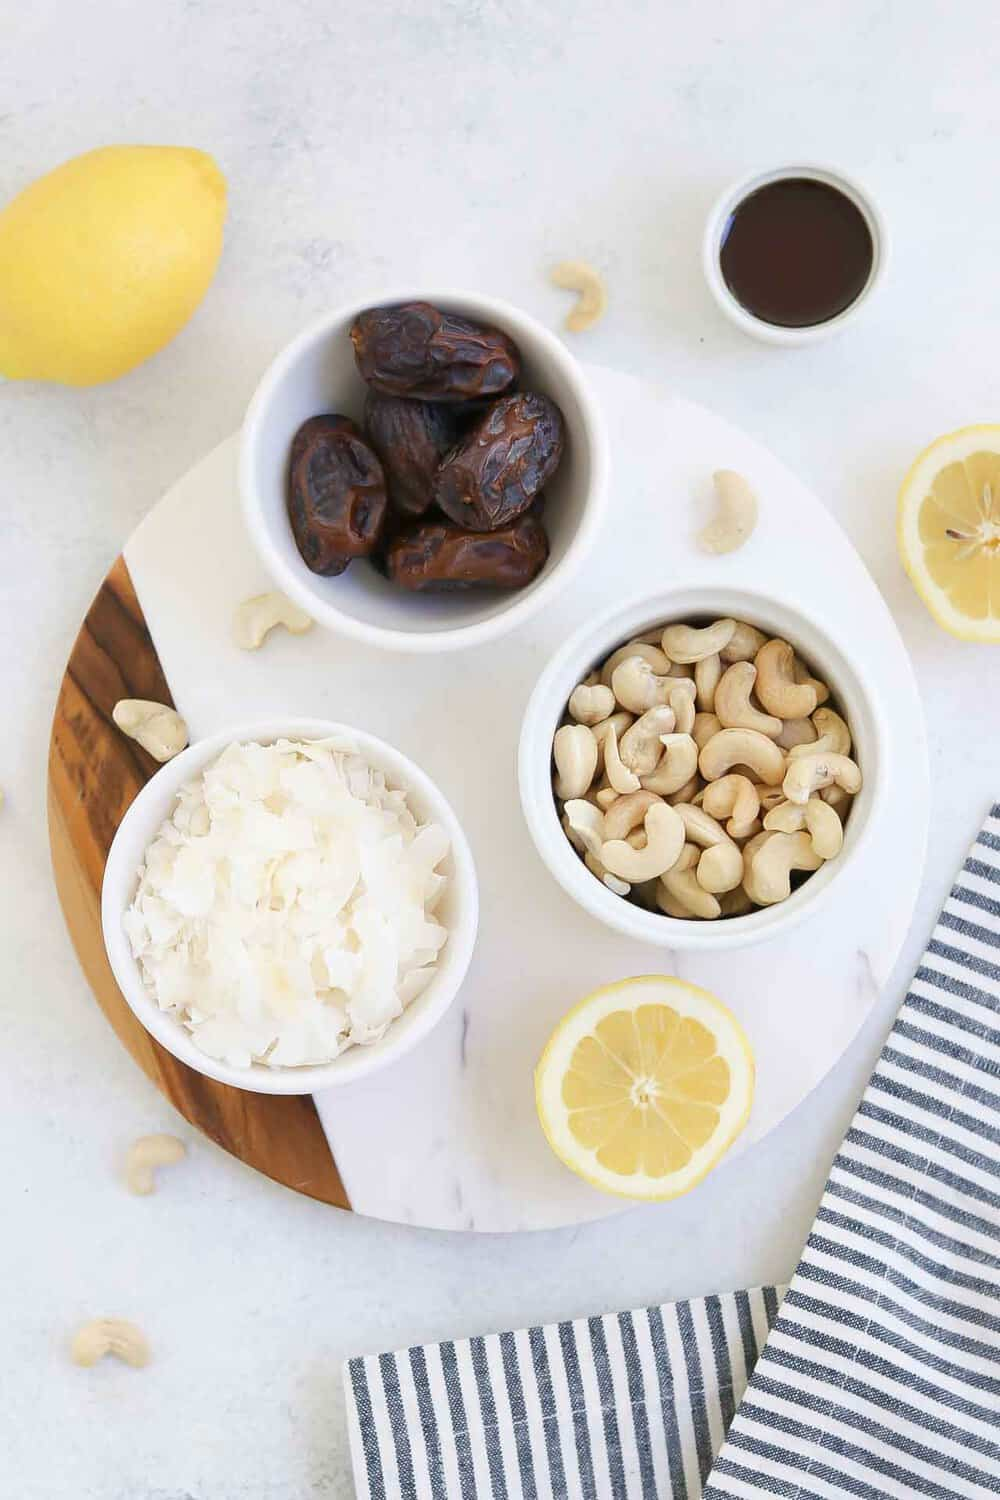 Ingredients for this recipe arranged in white bowls on a white circle platter.